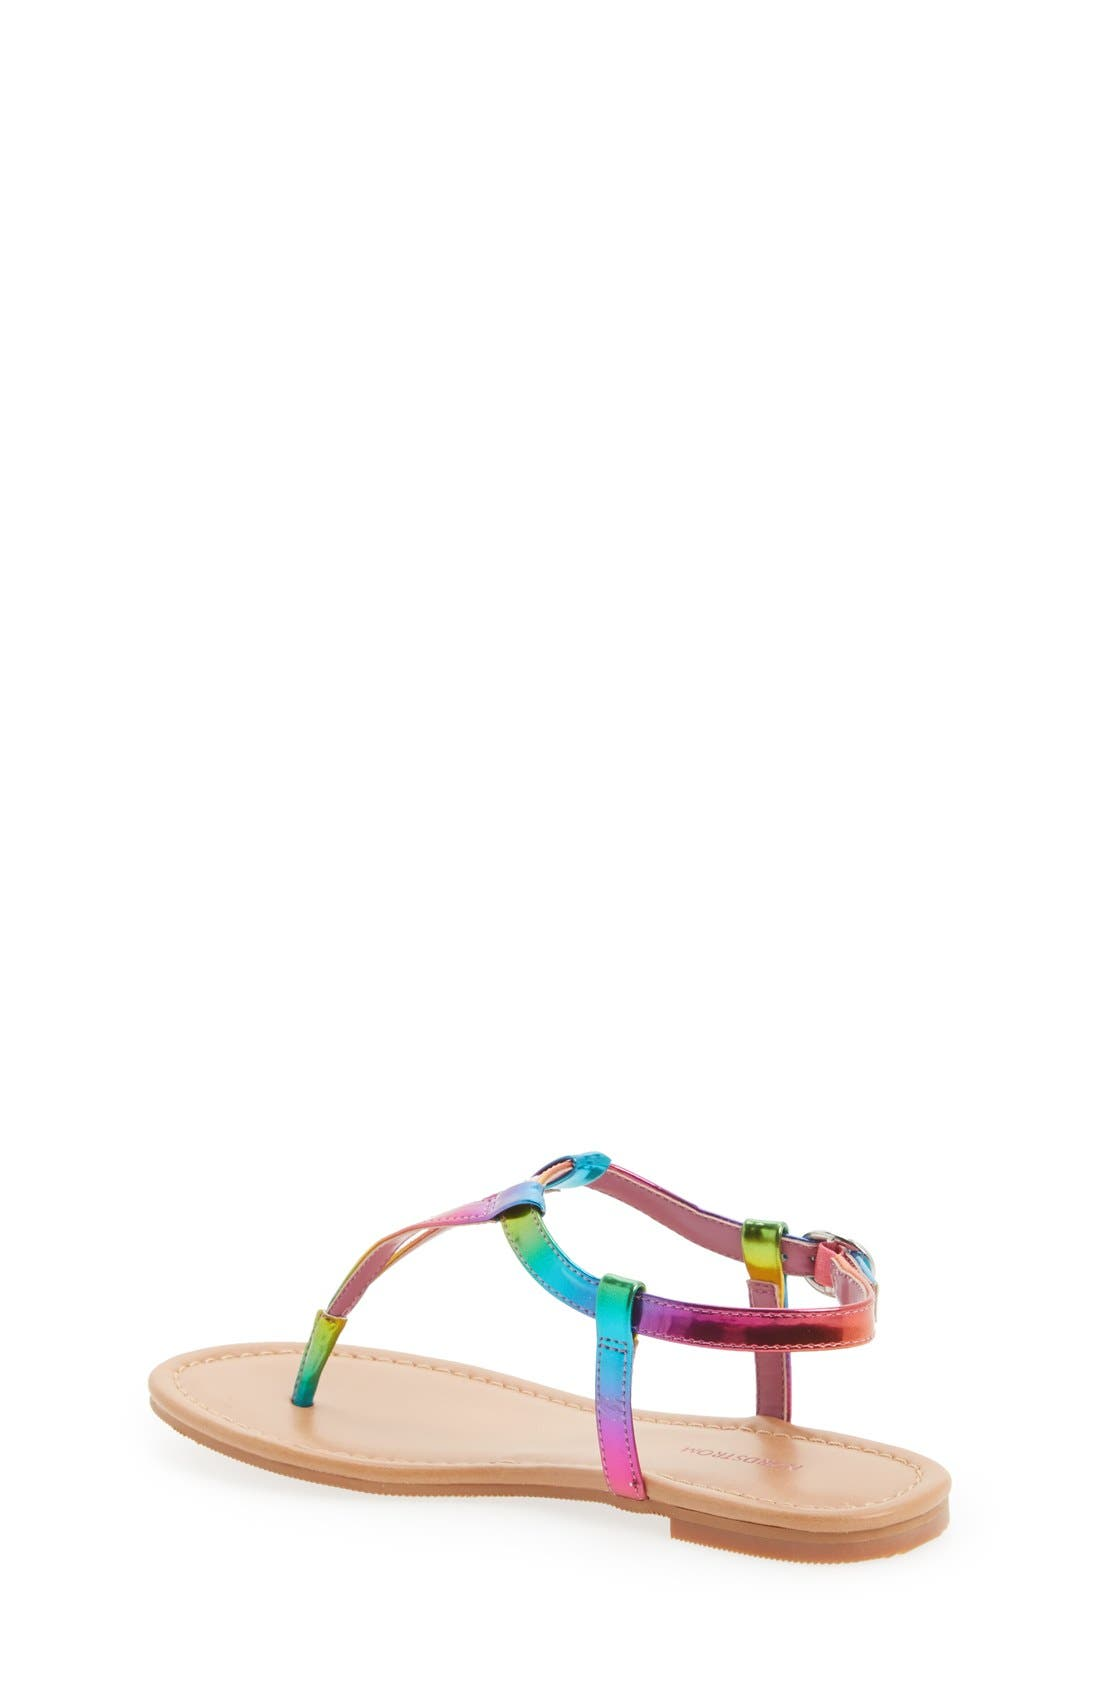 Alternate Image 2  - Nordstrom 'Audra' Sandal (Toddler, Little Kid & Big Kid)